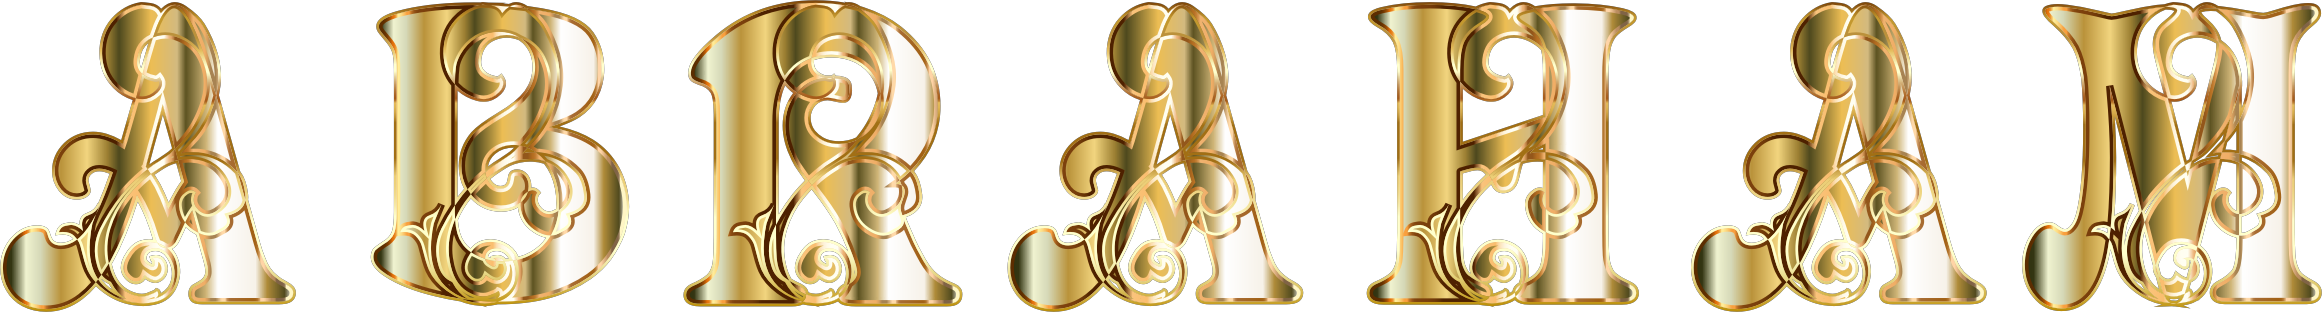 Gold Abraham Typography No Background by GDJ